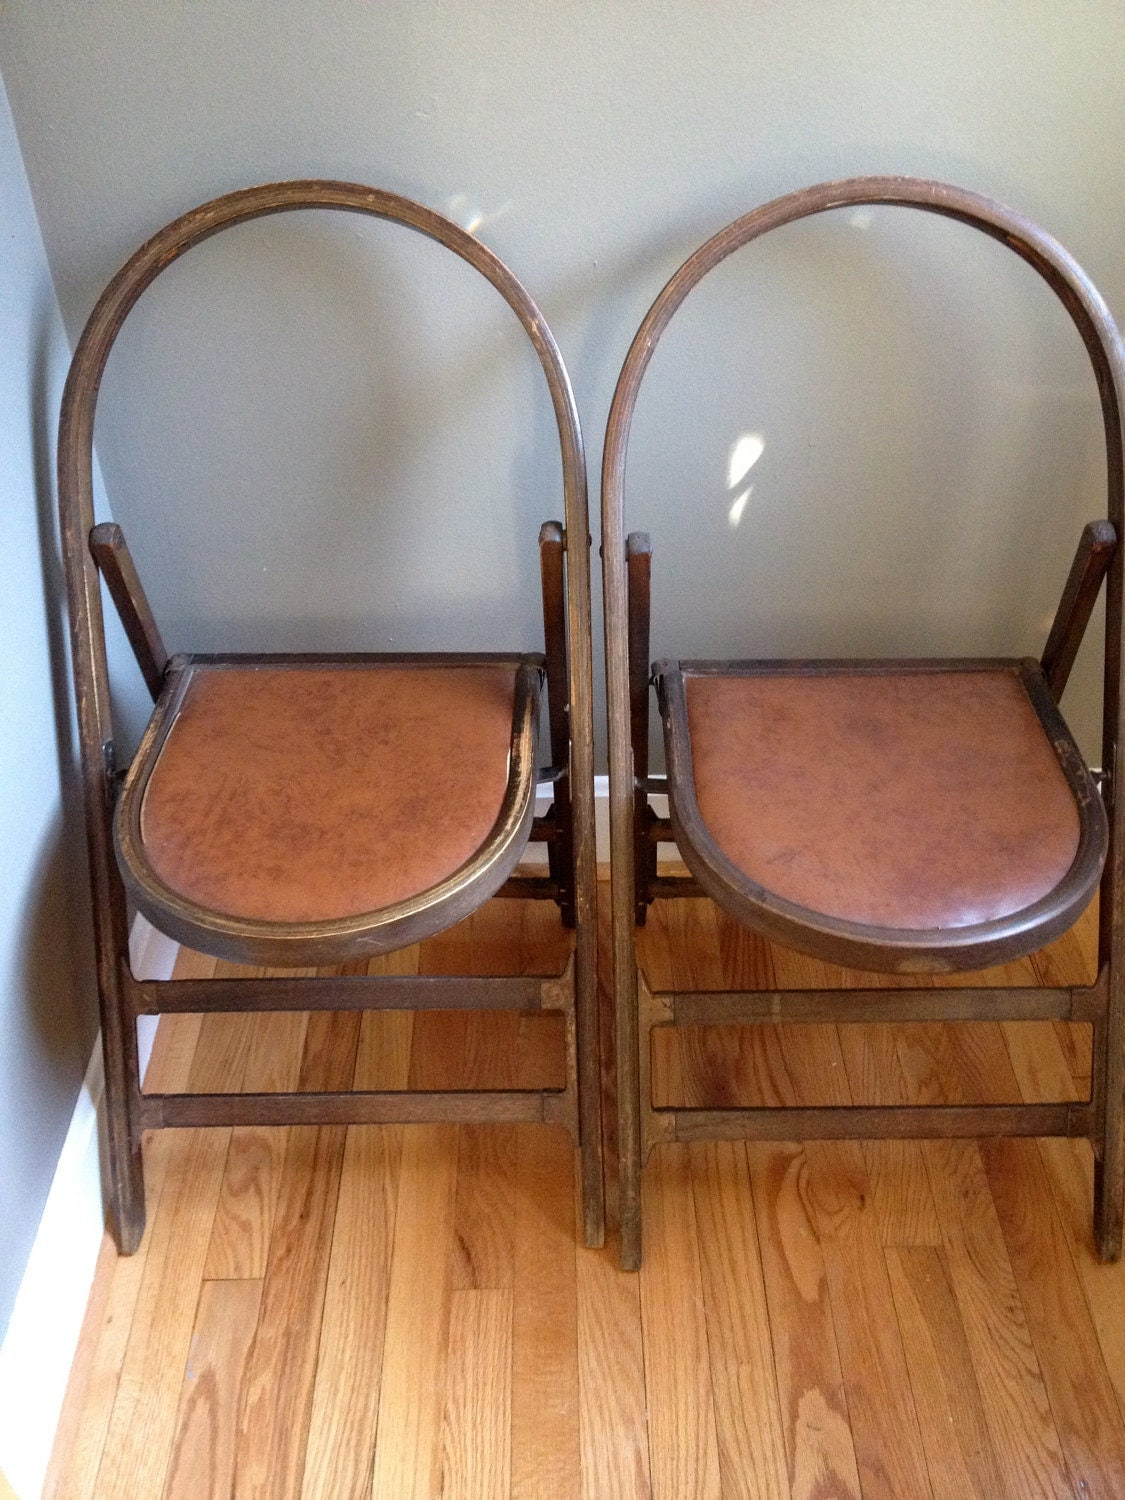 Set of 2 Vintage Wooden Folding Chairs - Mr & Mrs - Vintage Wedding